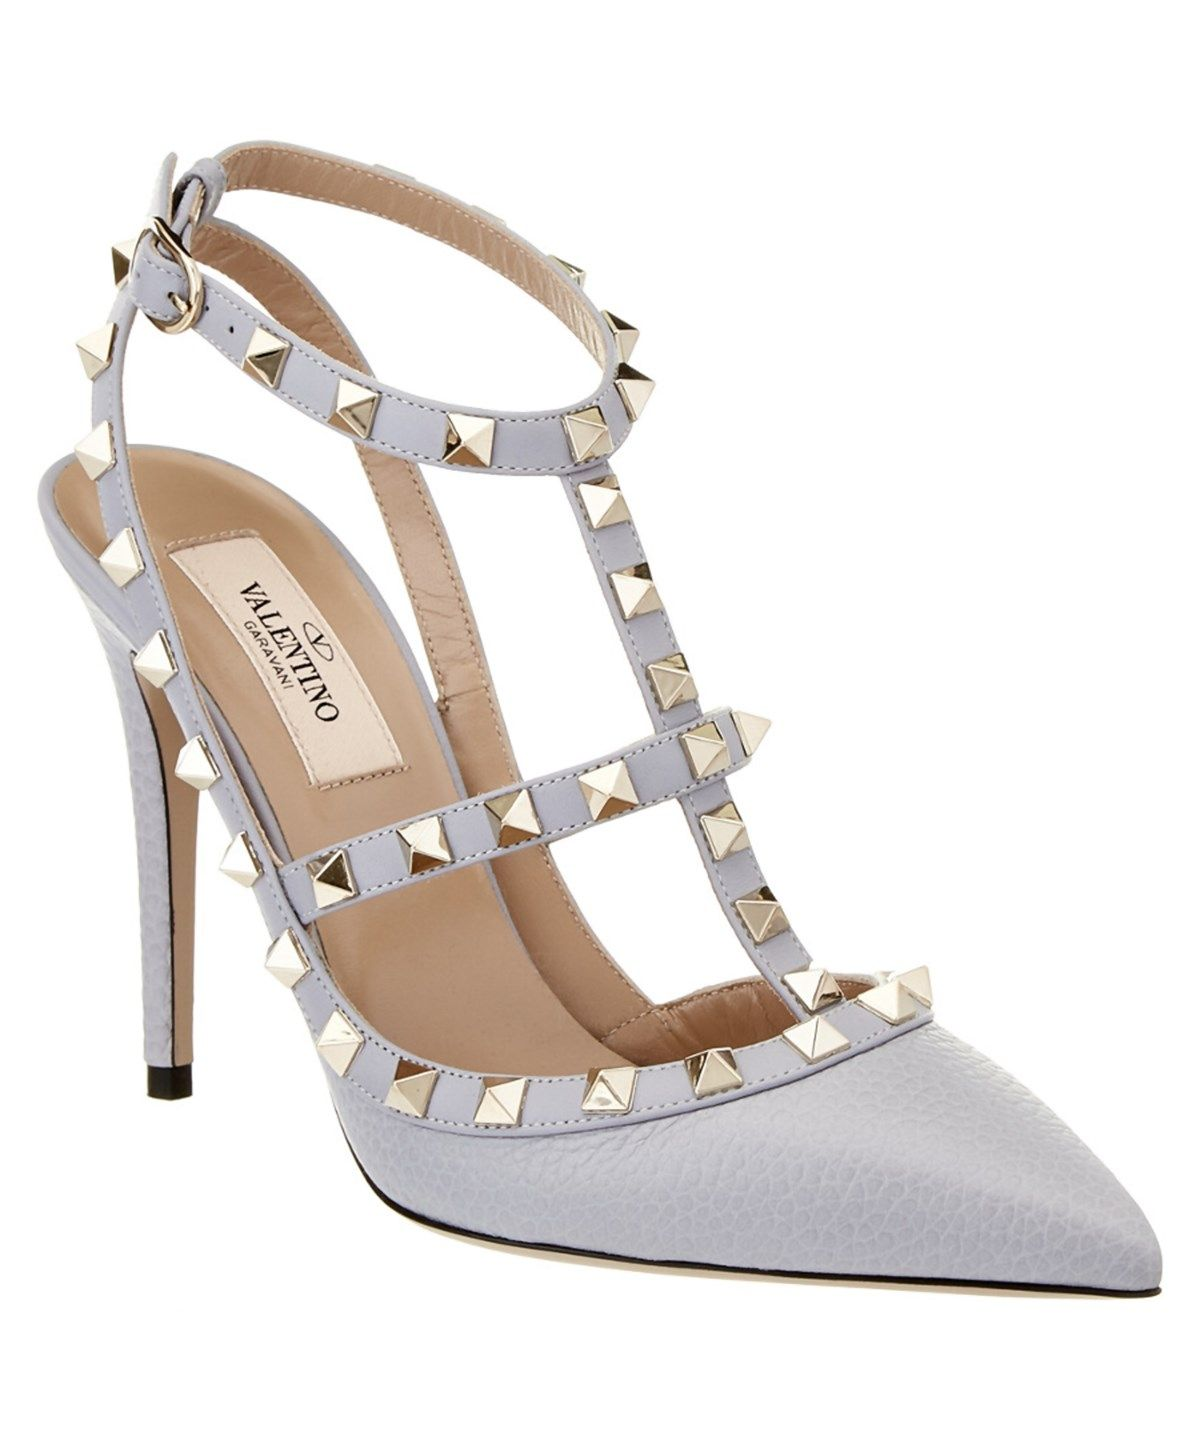 VALENTINO Valentino Rockstud Leather Ankle Strap Pump'. #valentino #shoes #pumps & high heels